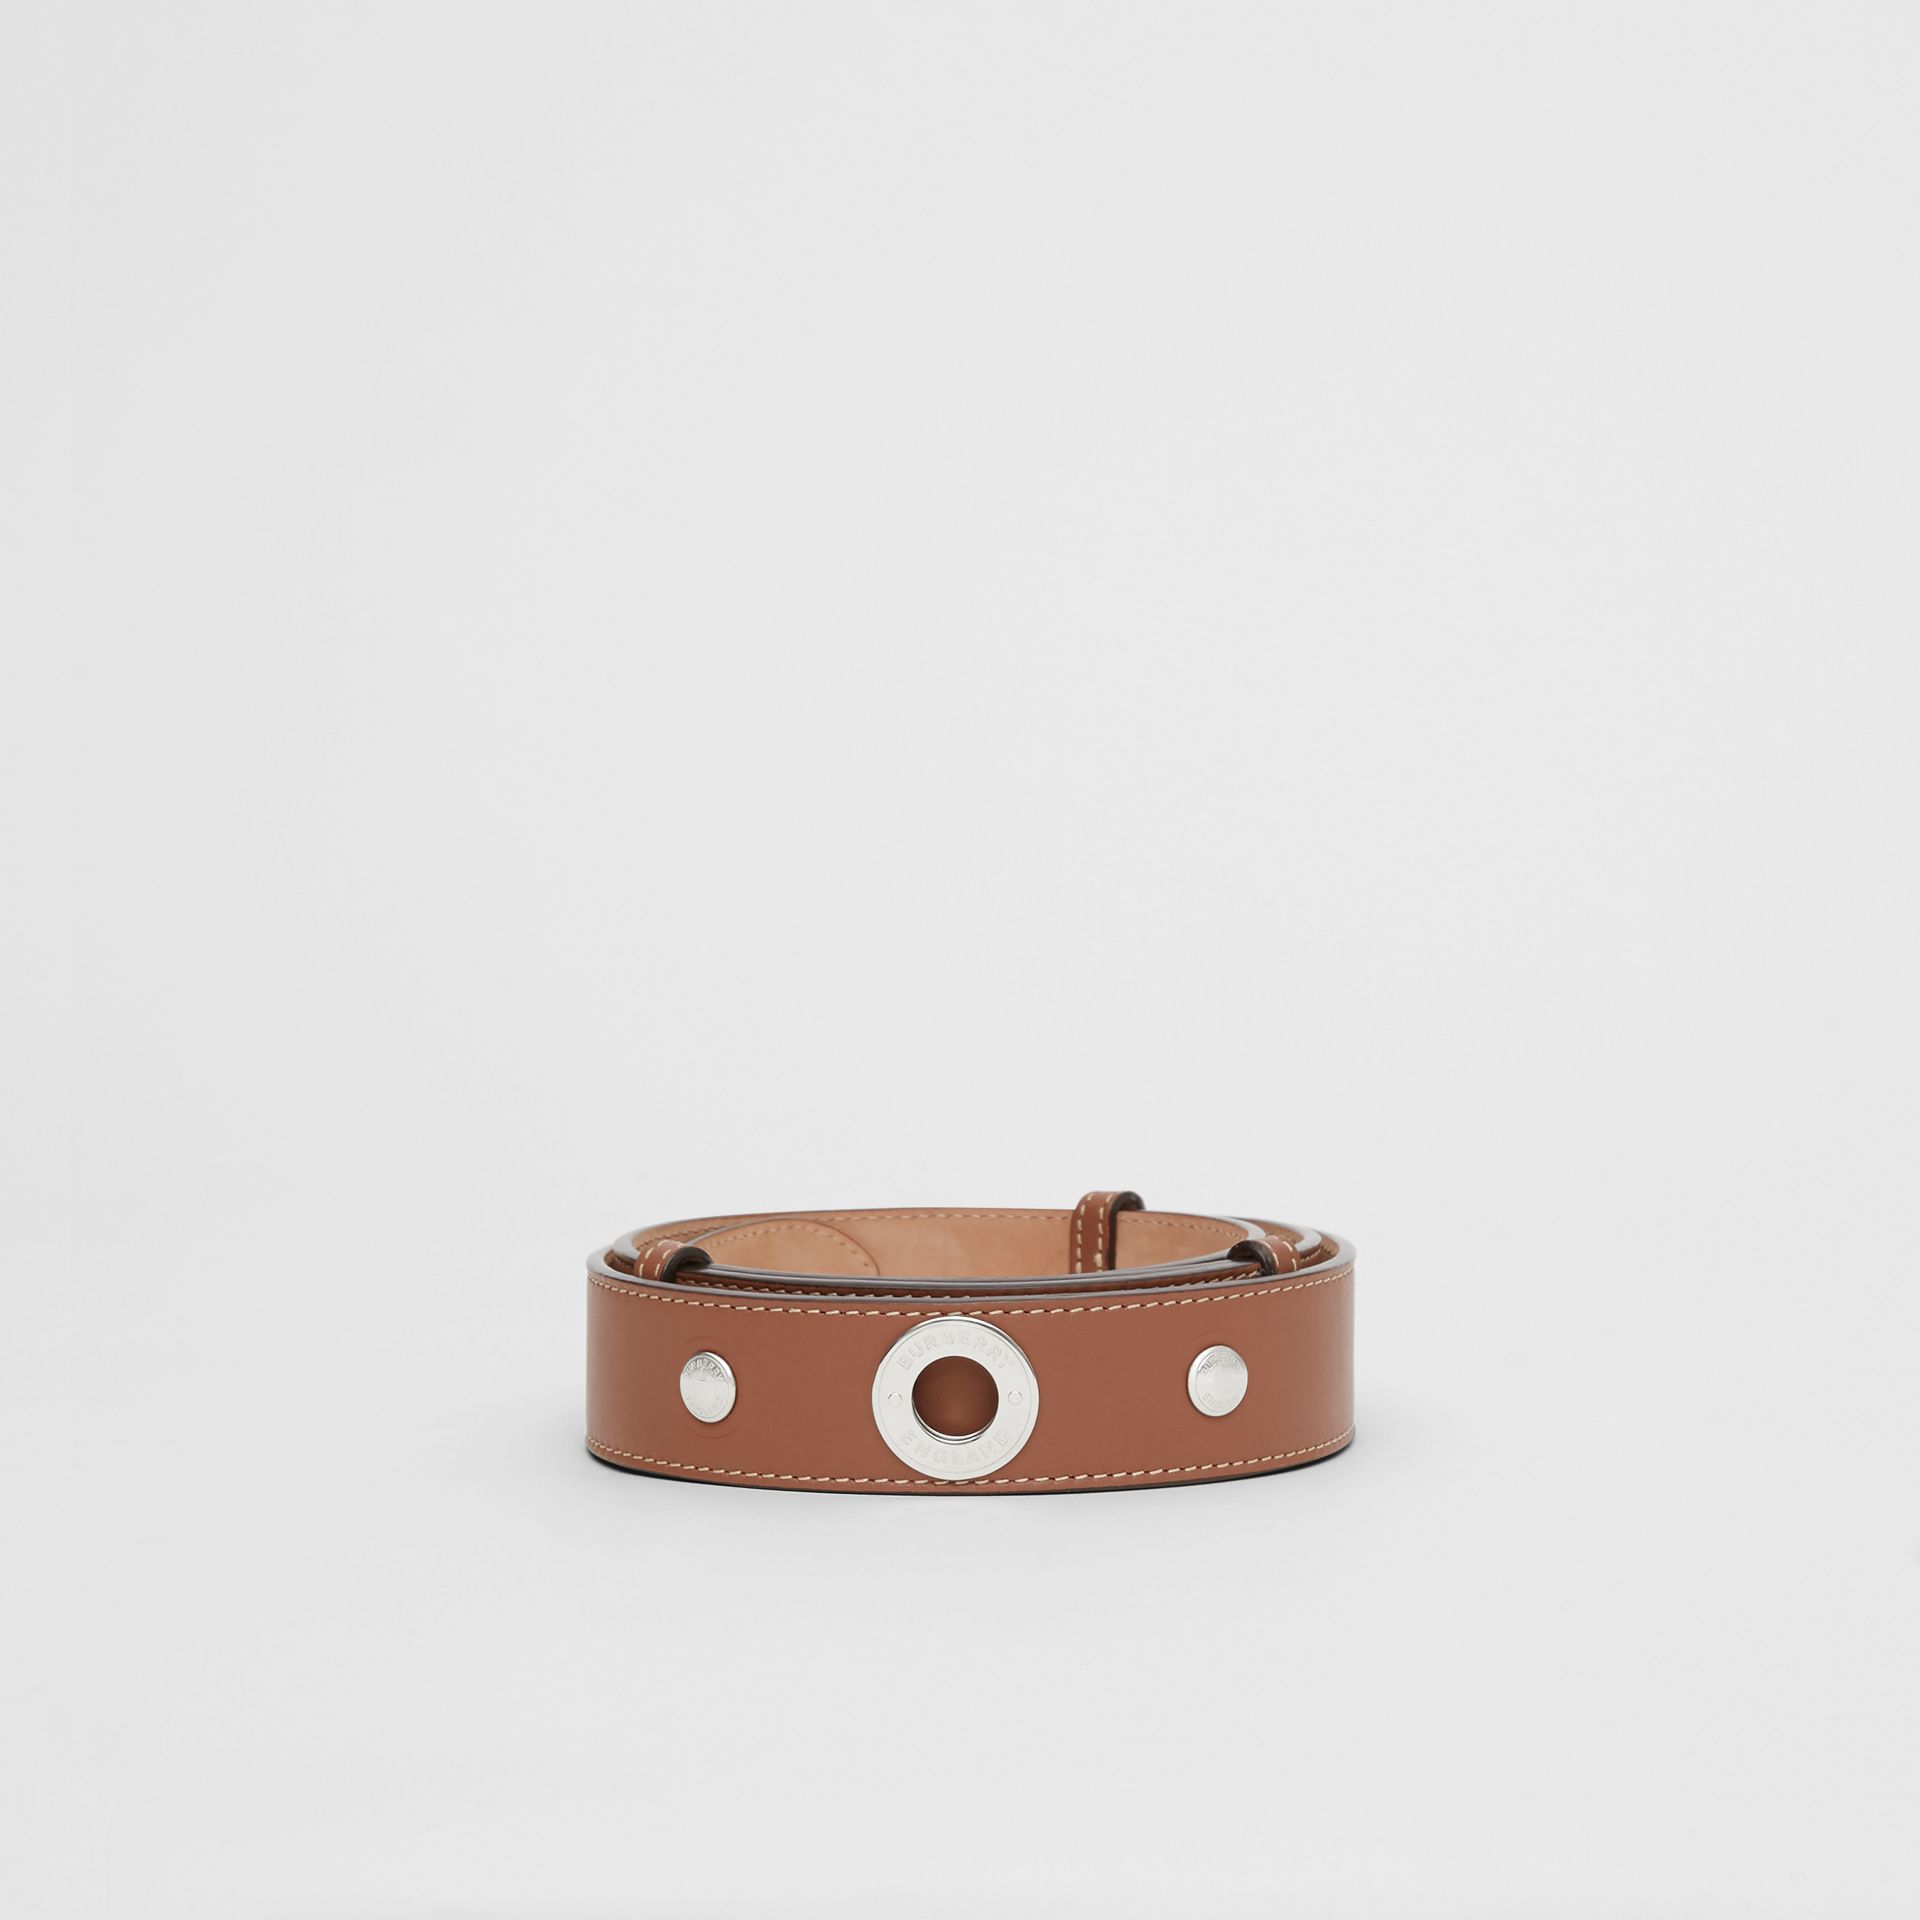 Triple Stud Leather Belt in Malt Brown - Women | Burberry Singapore - gallery image 3